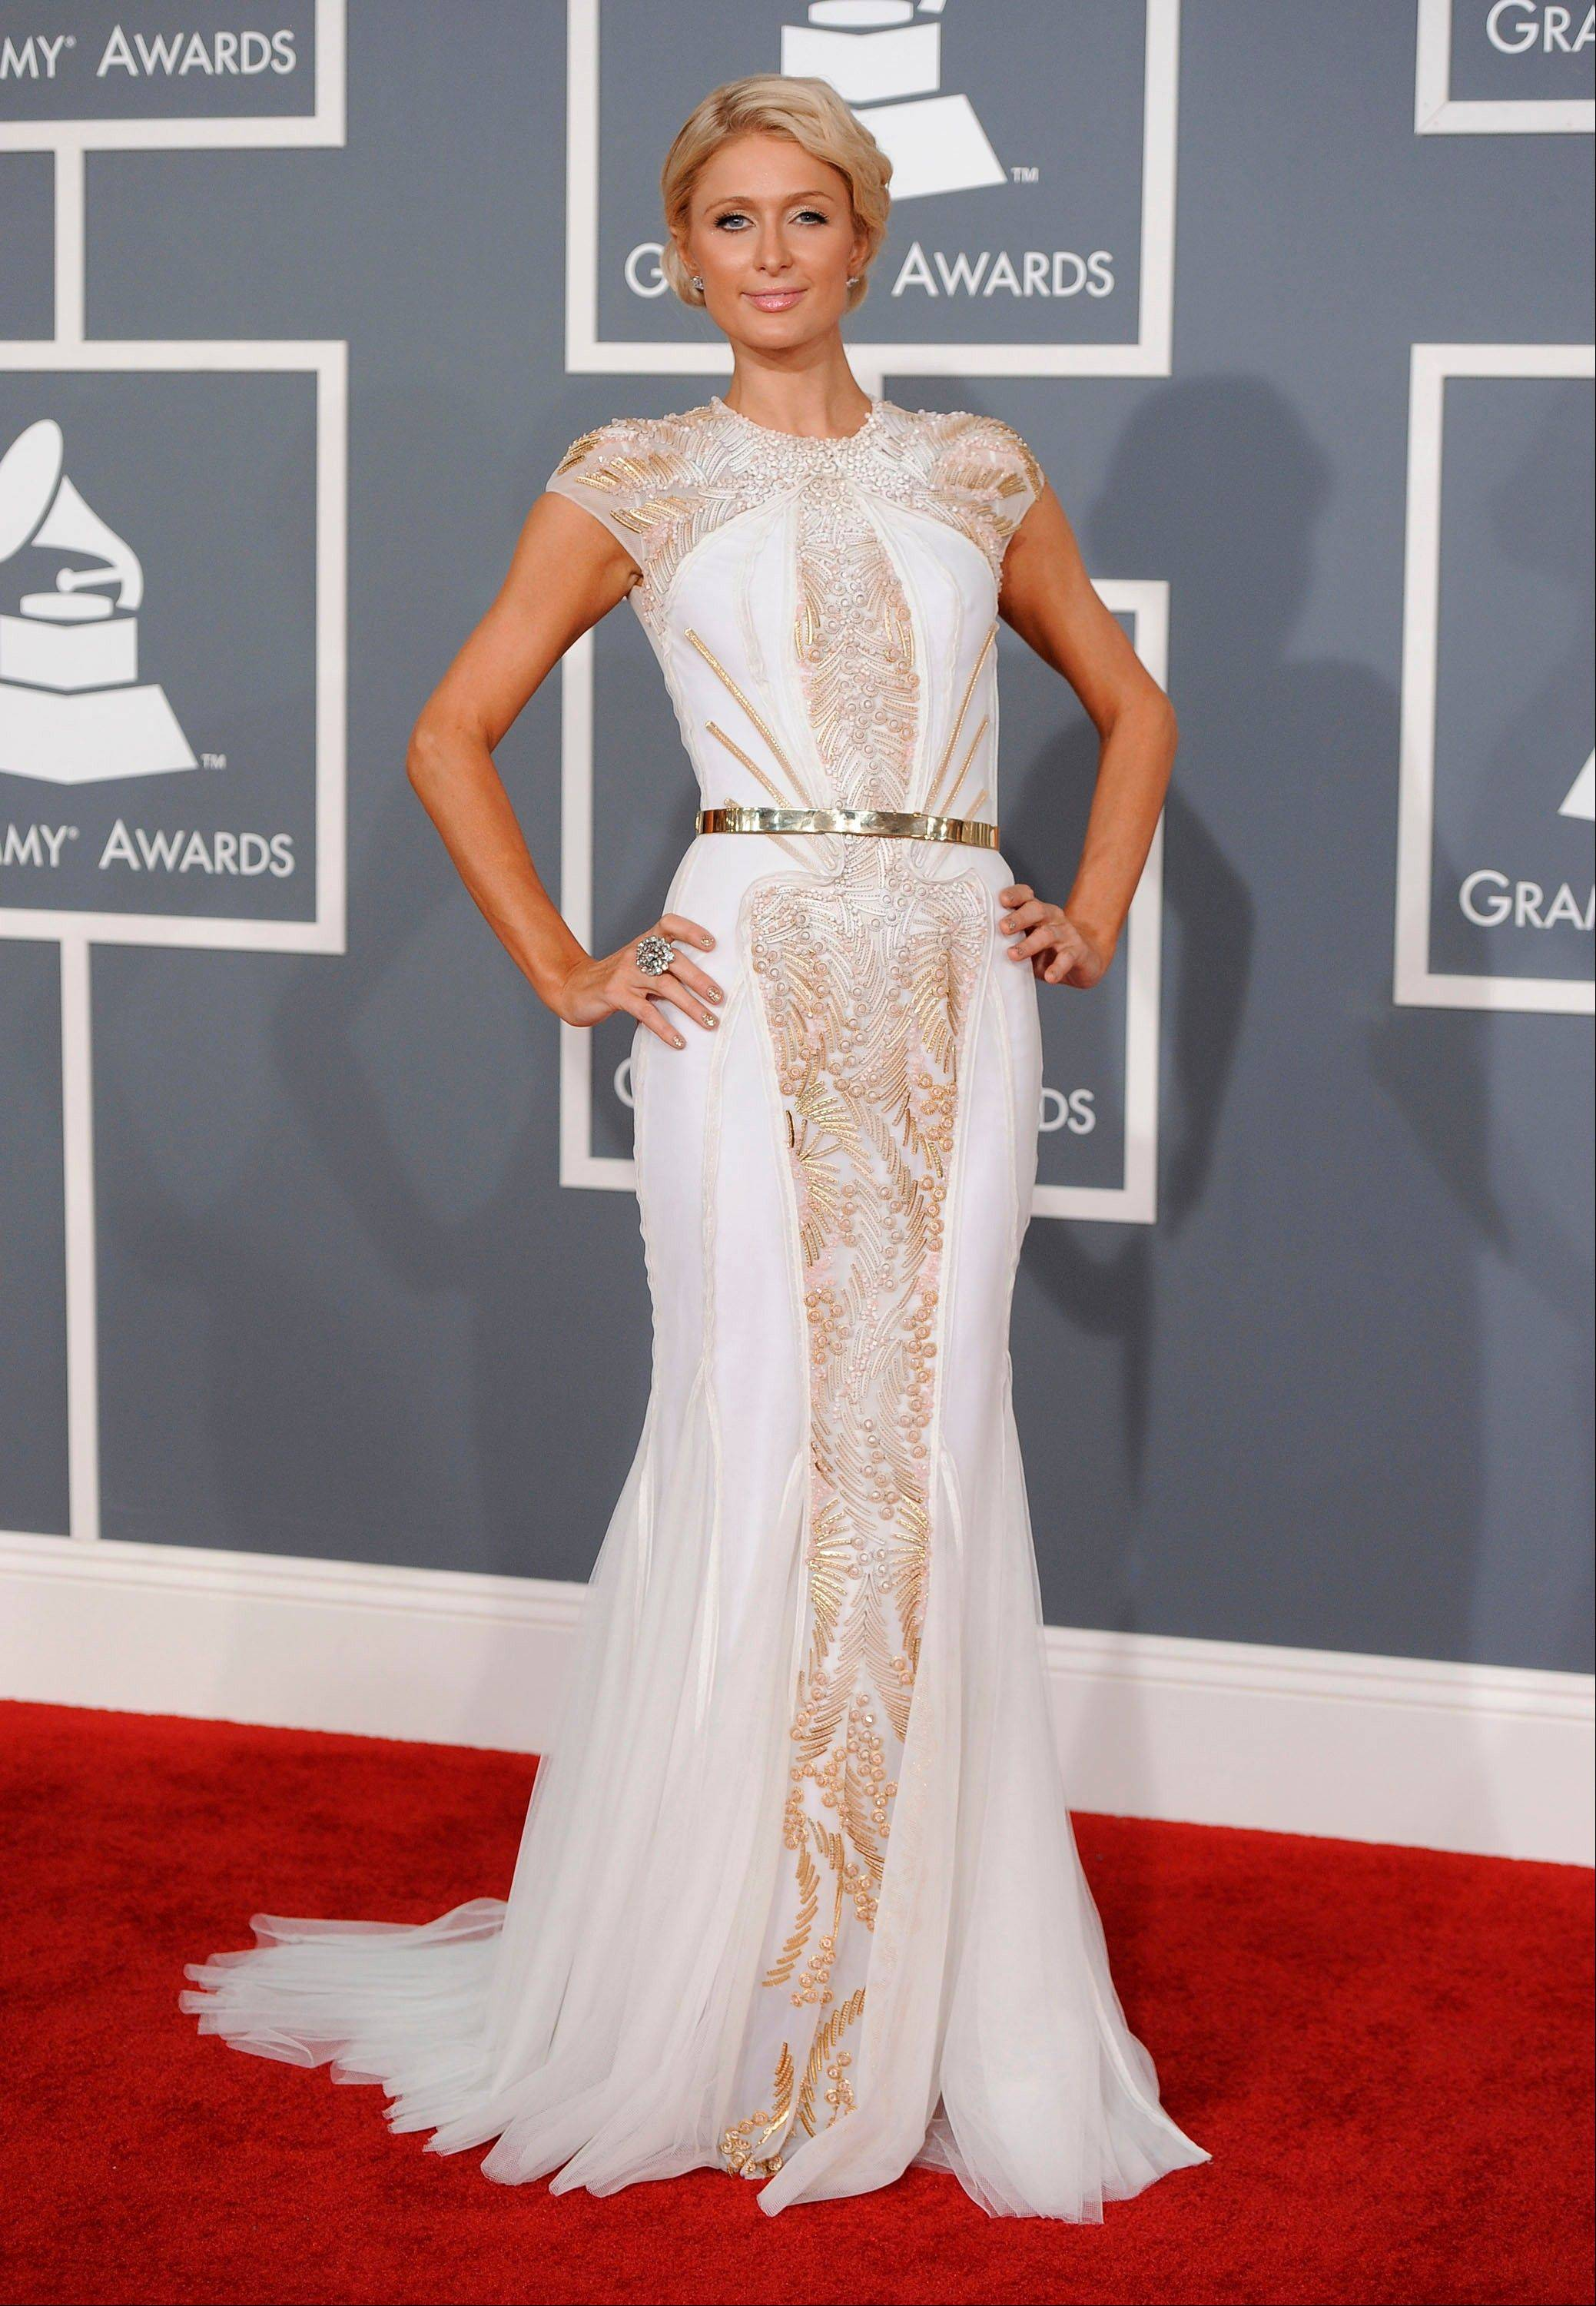 Paris Hilton arrives Sunday at the 54th annual Grammy Awards in Los Angeles.